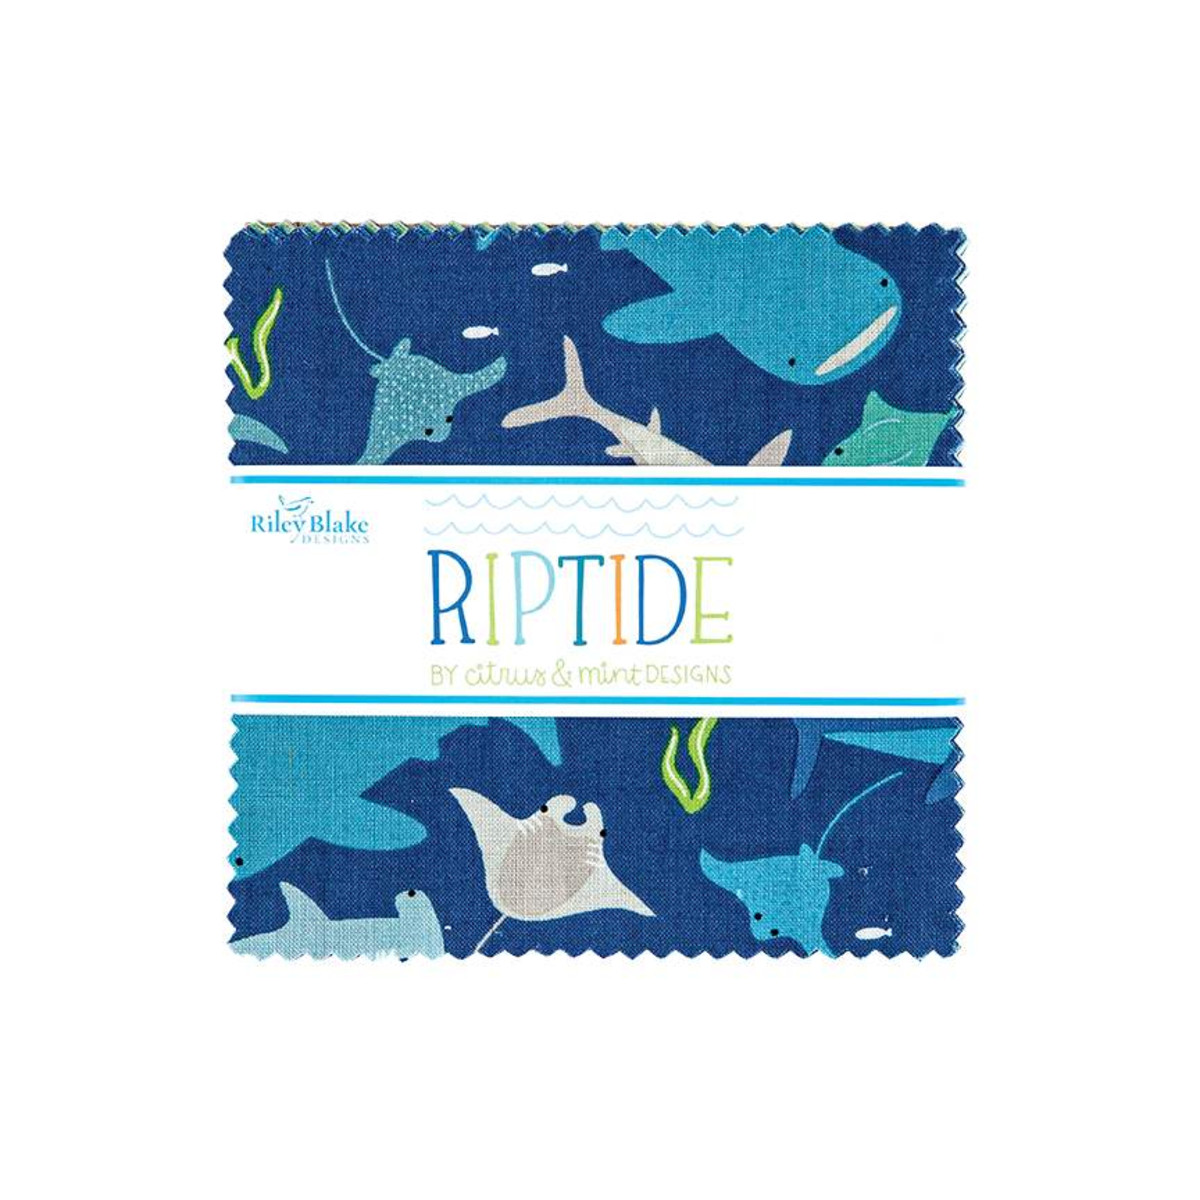 Riley Blake Charm Pack - Riptide by Citrus & Mint Designs